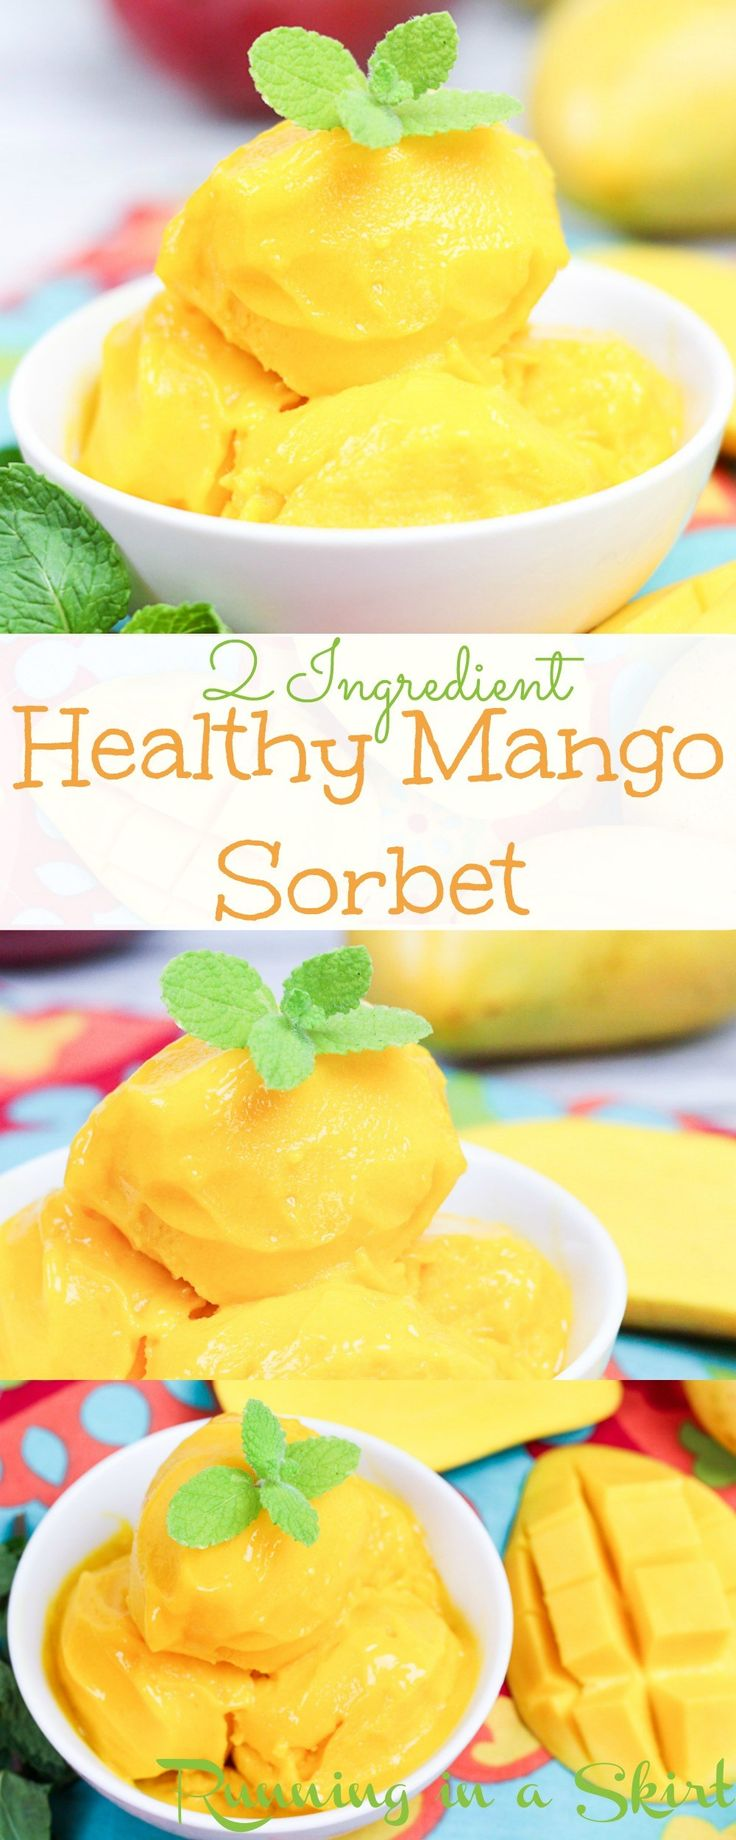 Can Dogs Eat Mango Sorbet